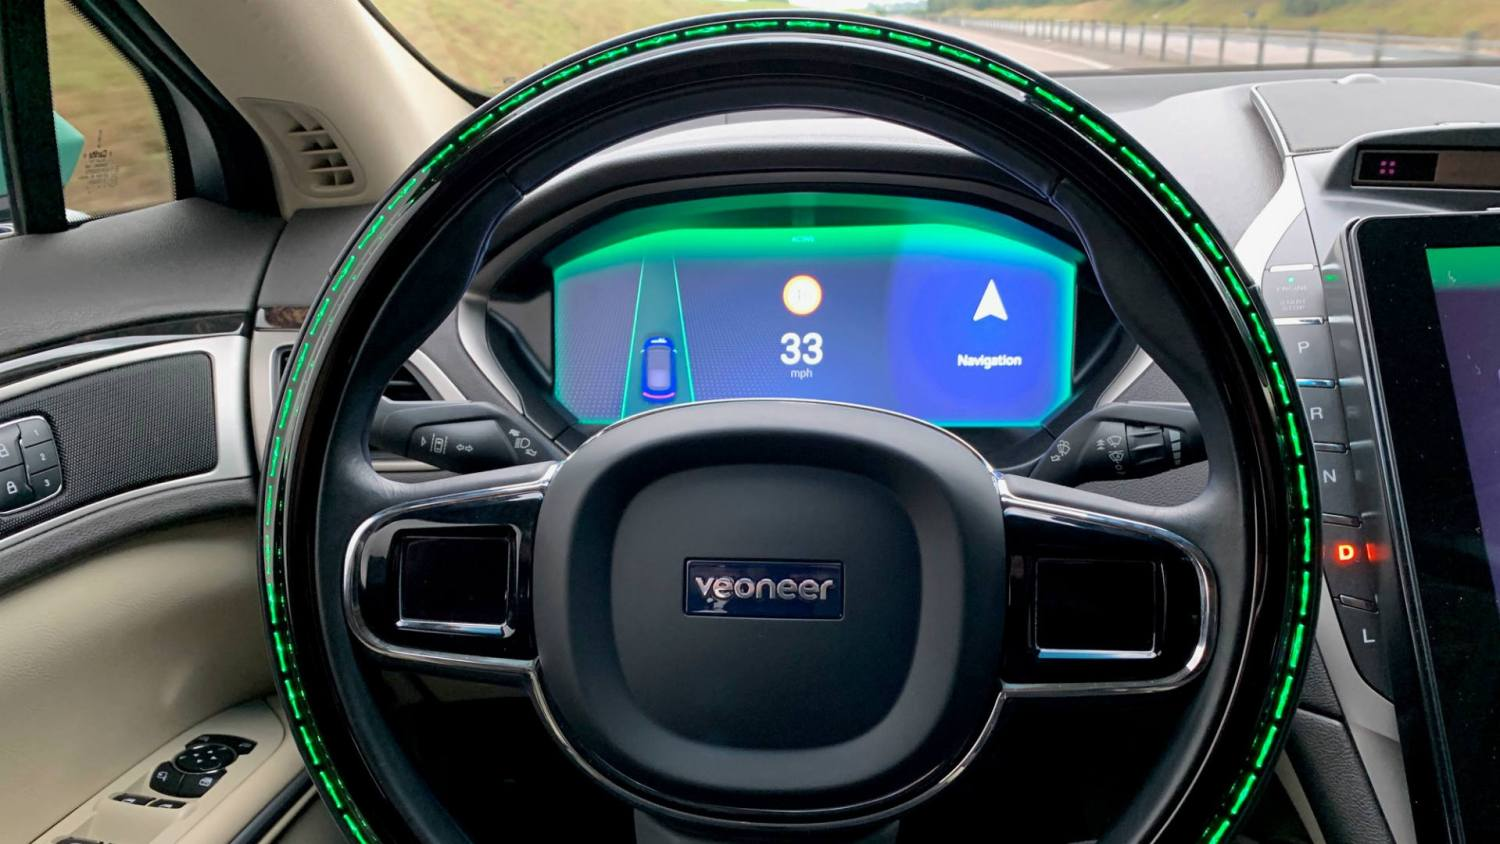 automated driving mode